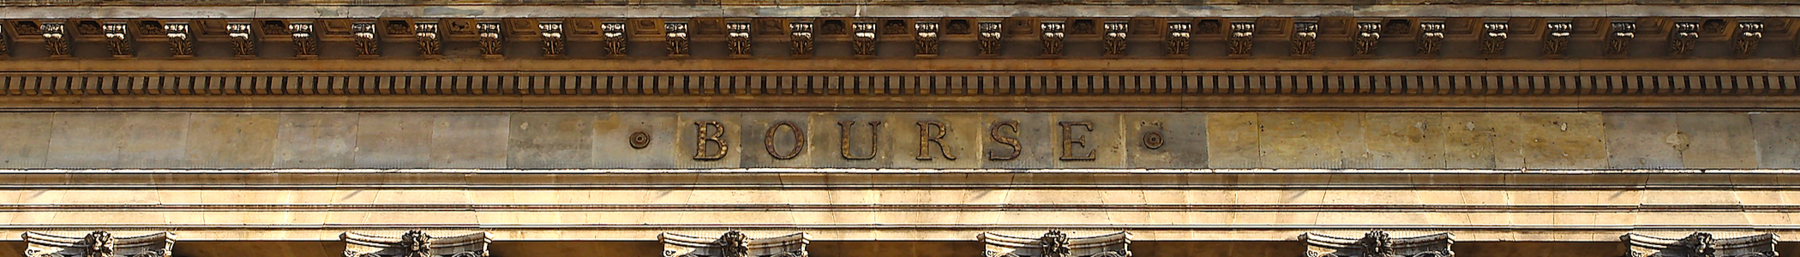 Paris 2e Wikivoyage Banner.png